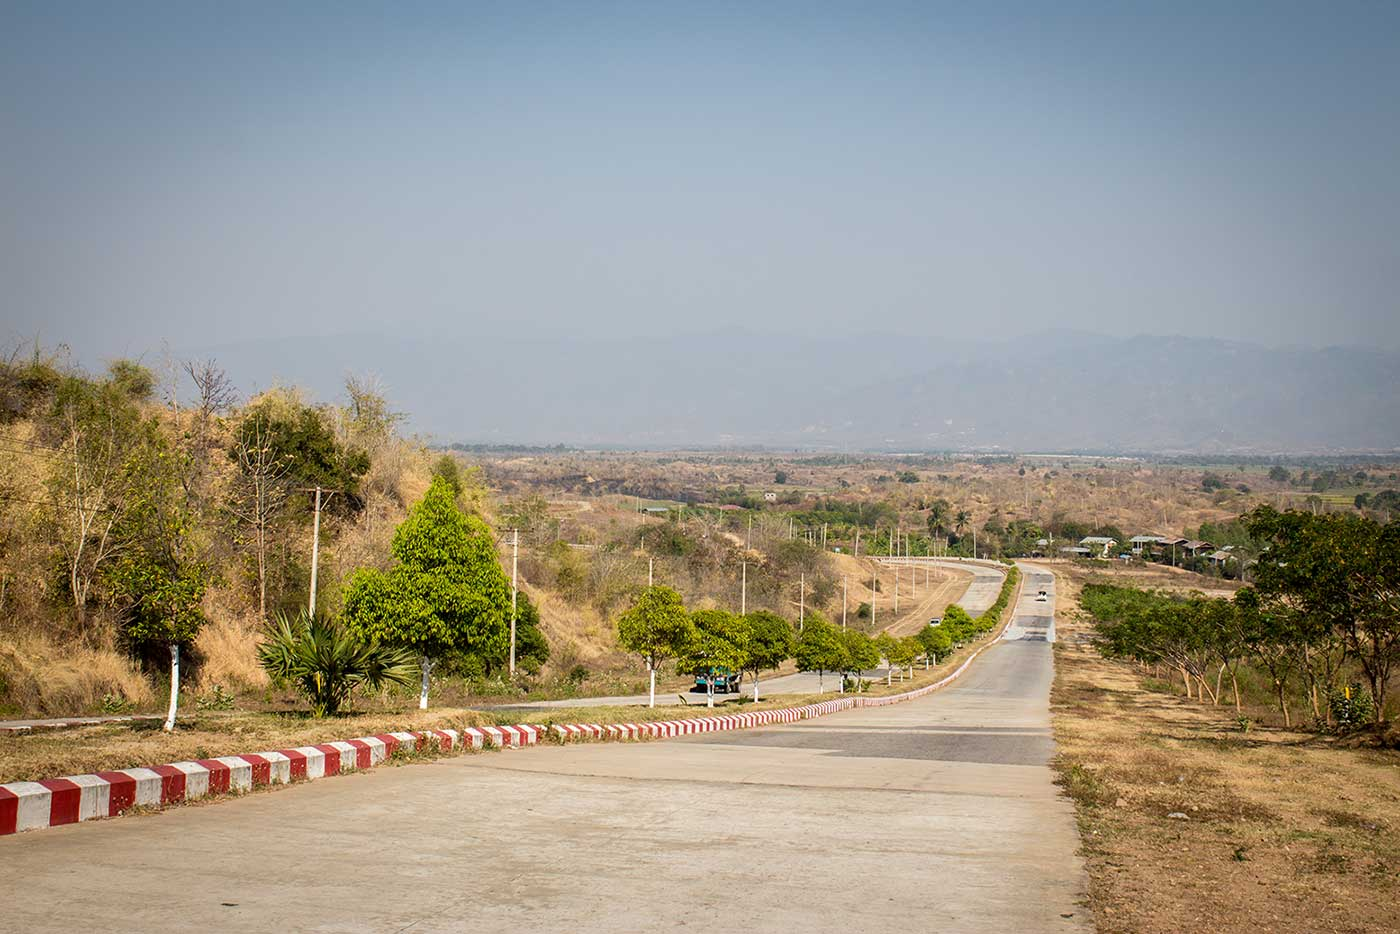 The road out of Naypyidaw, and beyond, the mountains of central Myanmar.